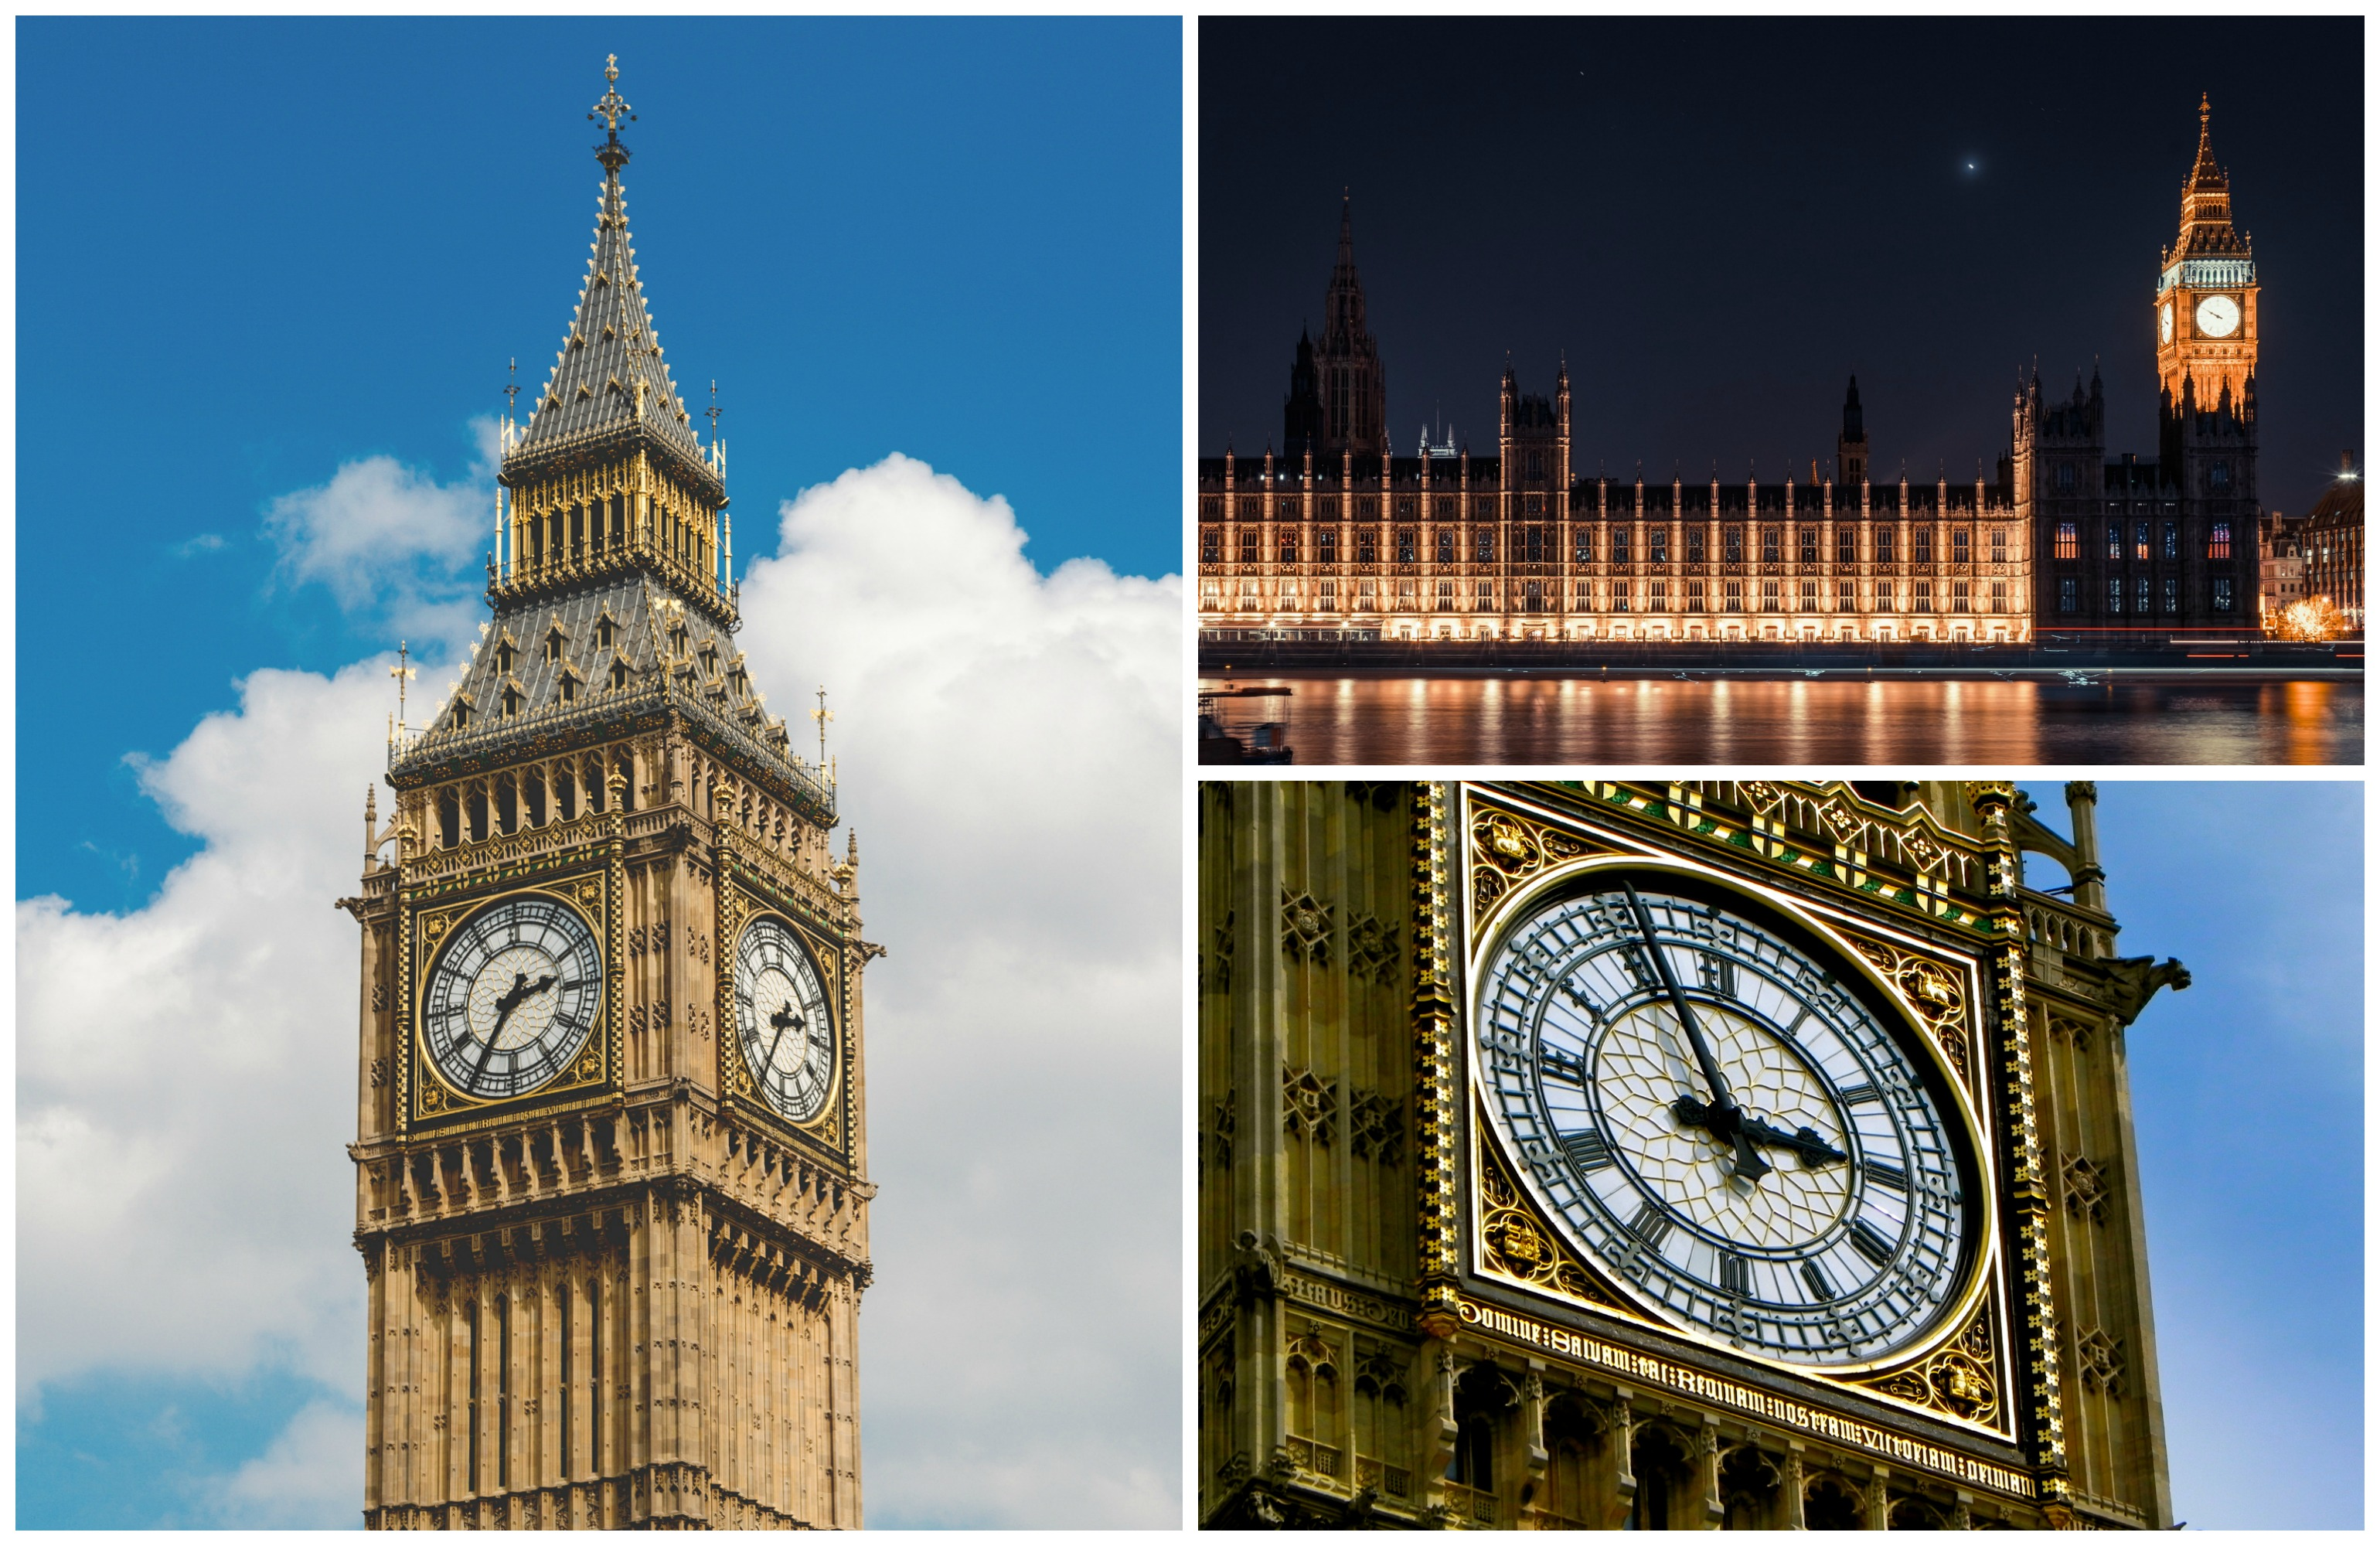 the history of big ben in 1 minute